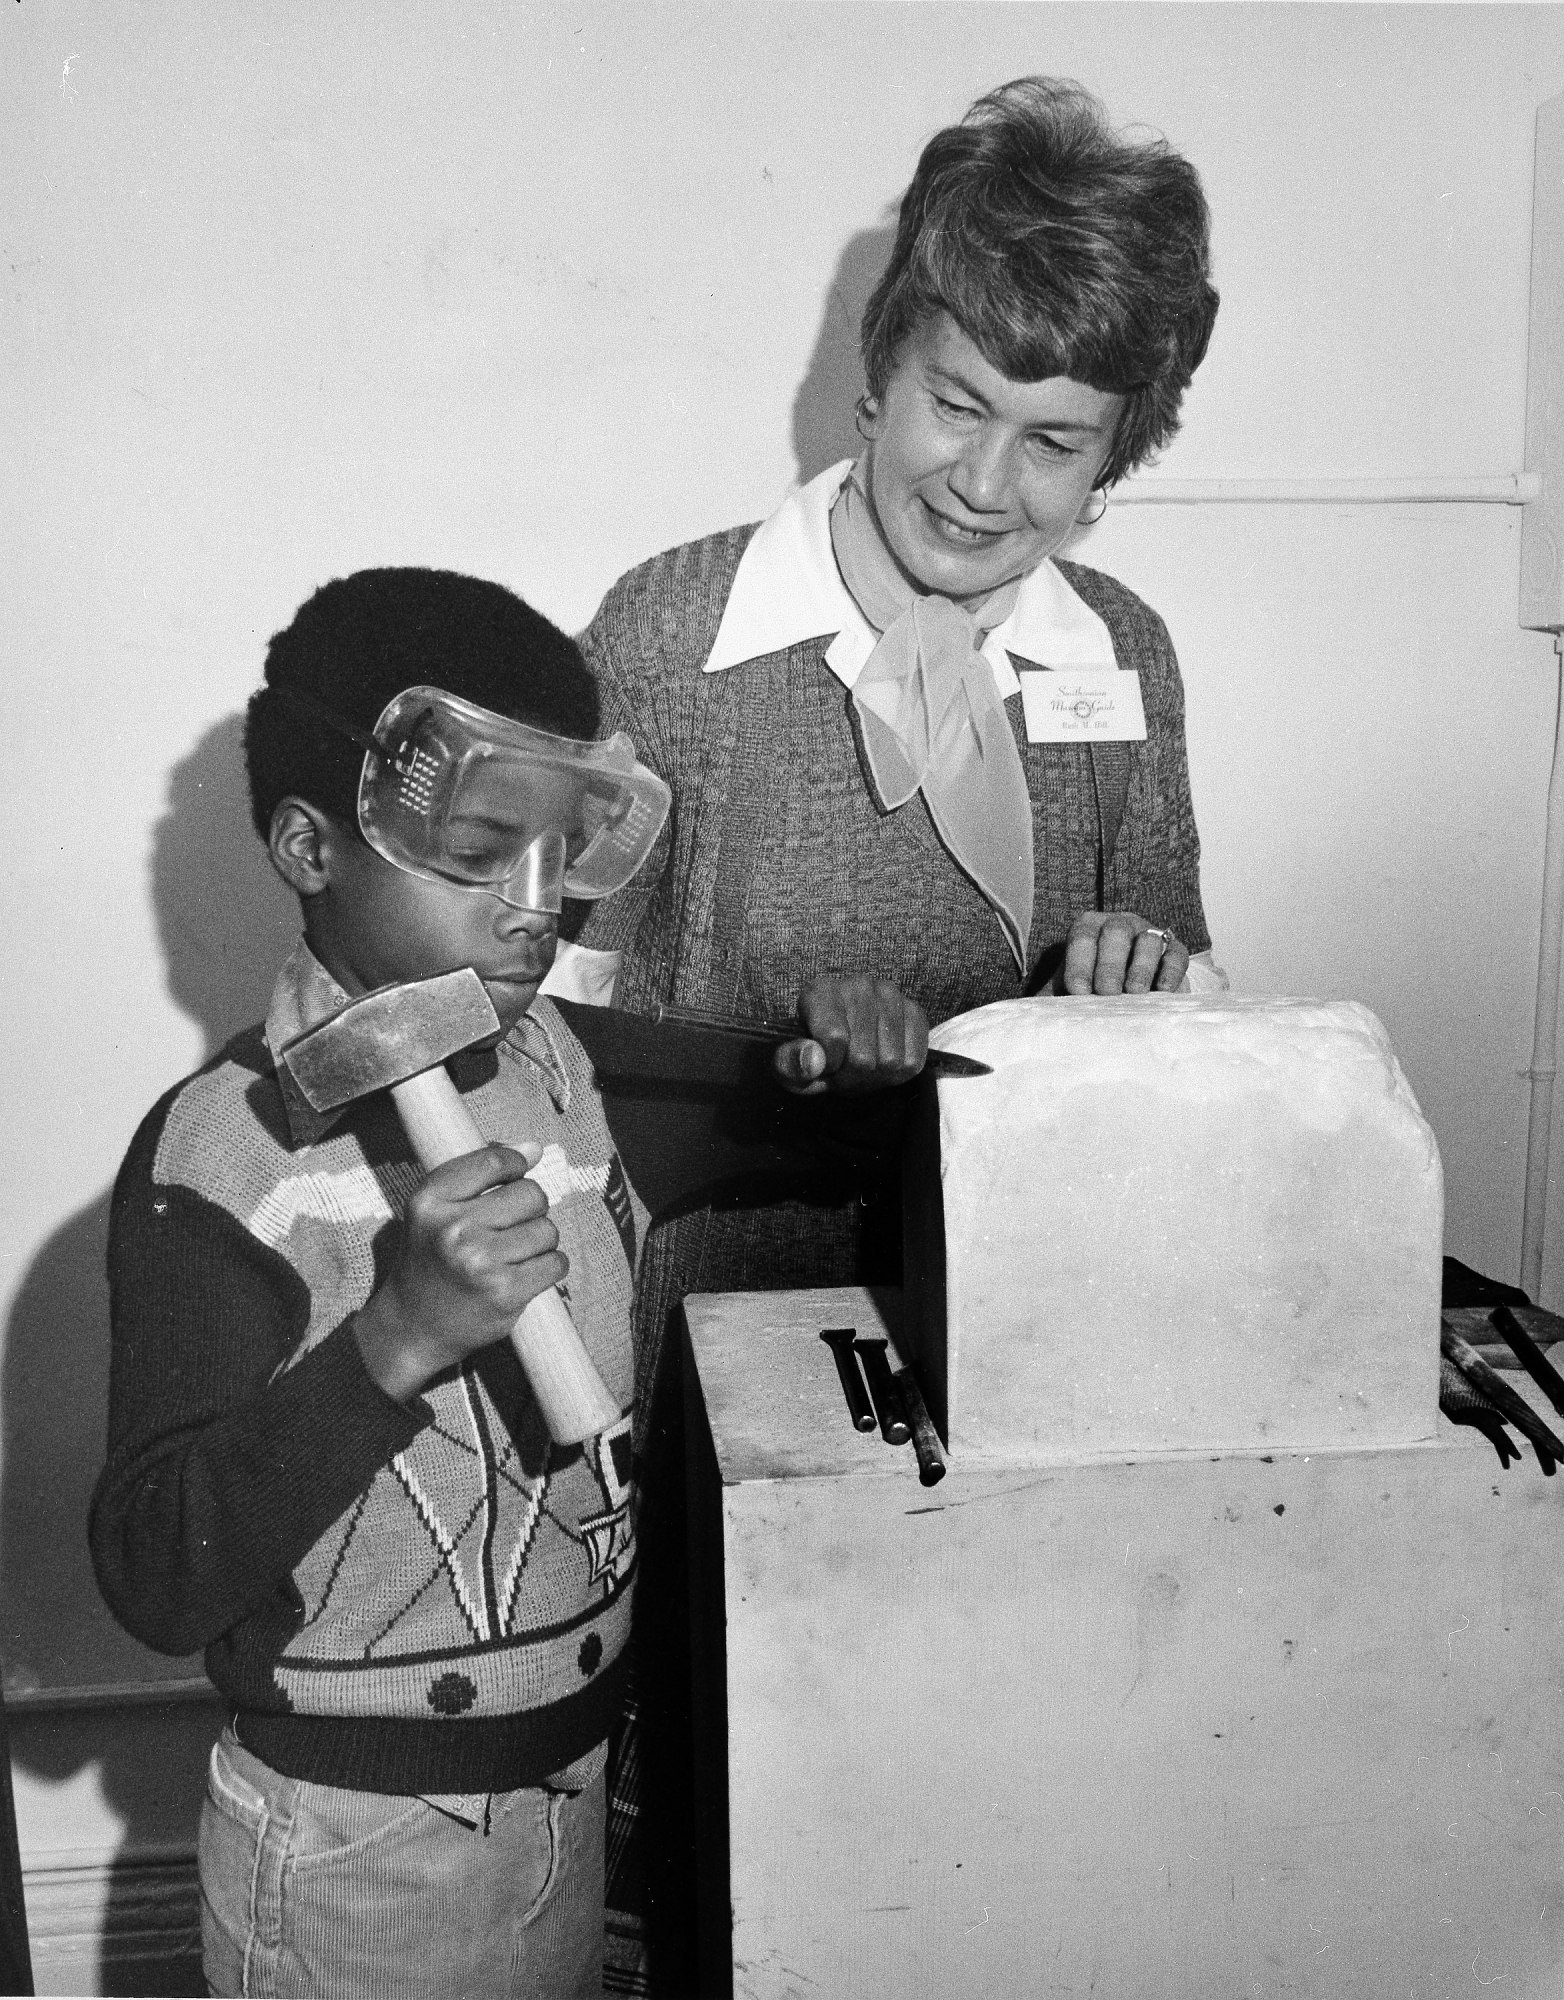 Volunteer docent Ruth Hill helps a young student during a sculpture workshop at the National Portrait Gallery, 1978.